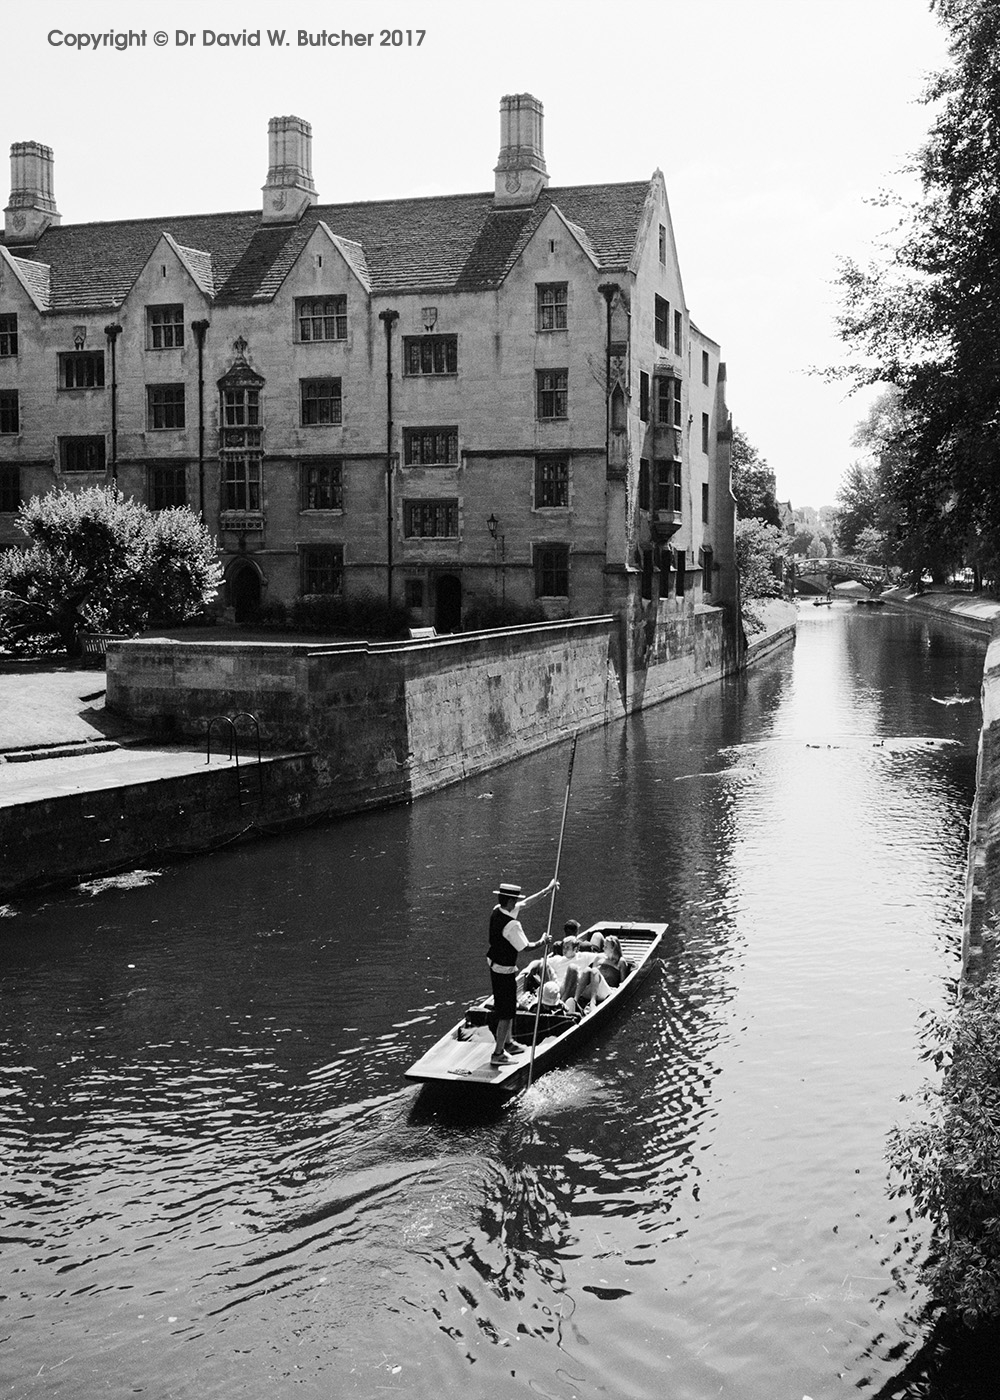 Bodley's Court King's College and River Cam, Cambridge, England